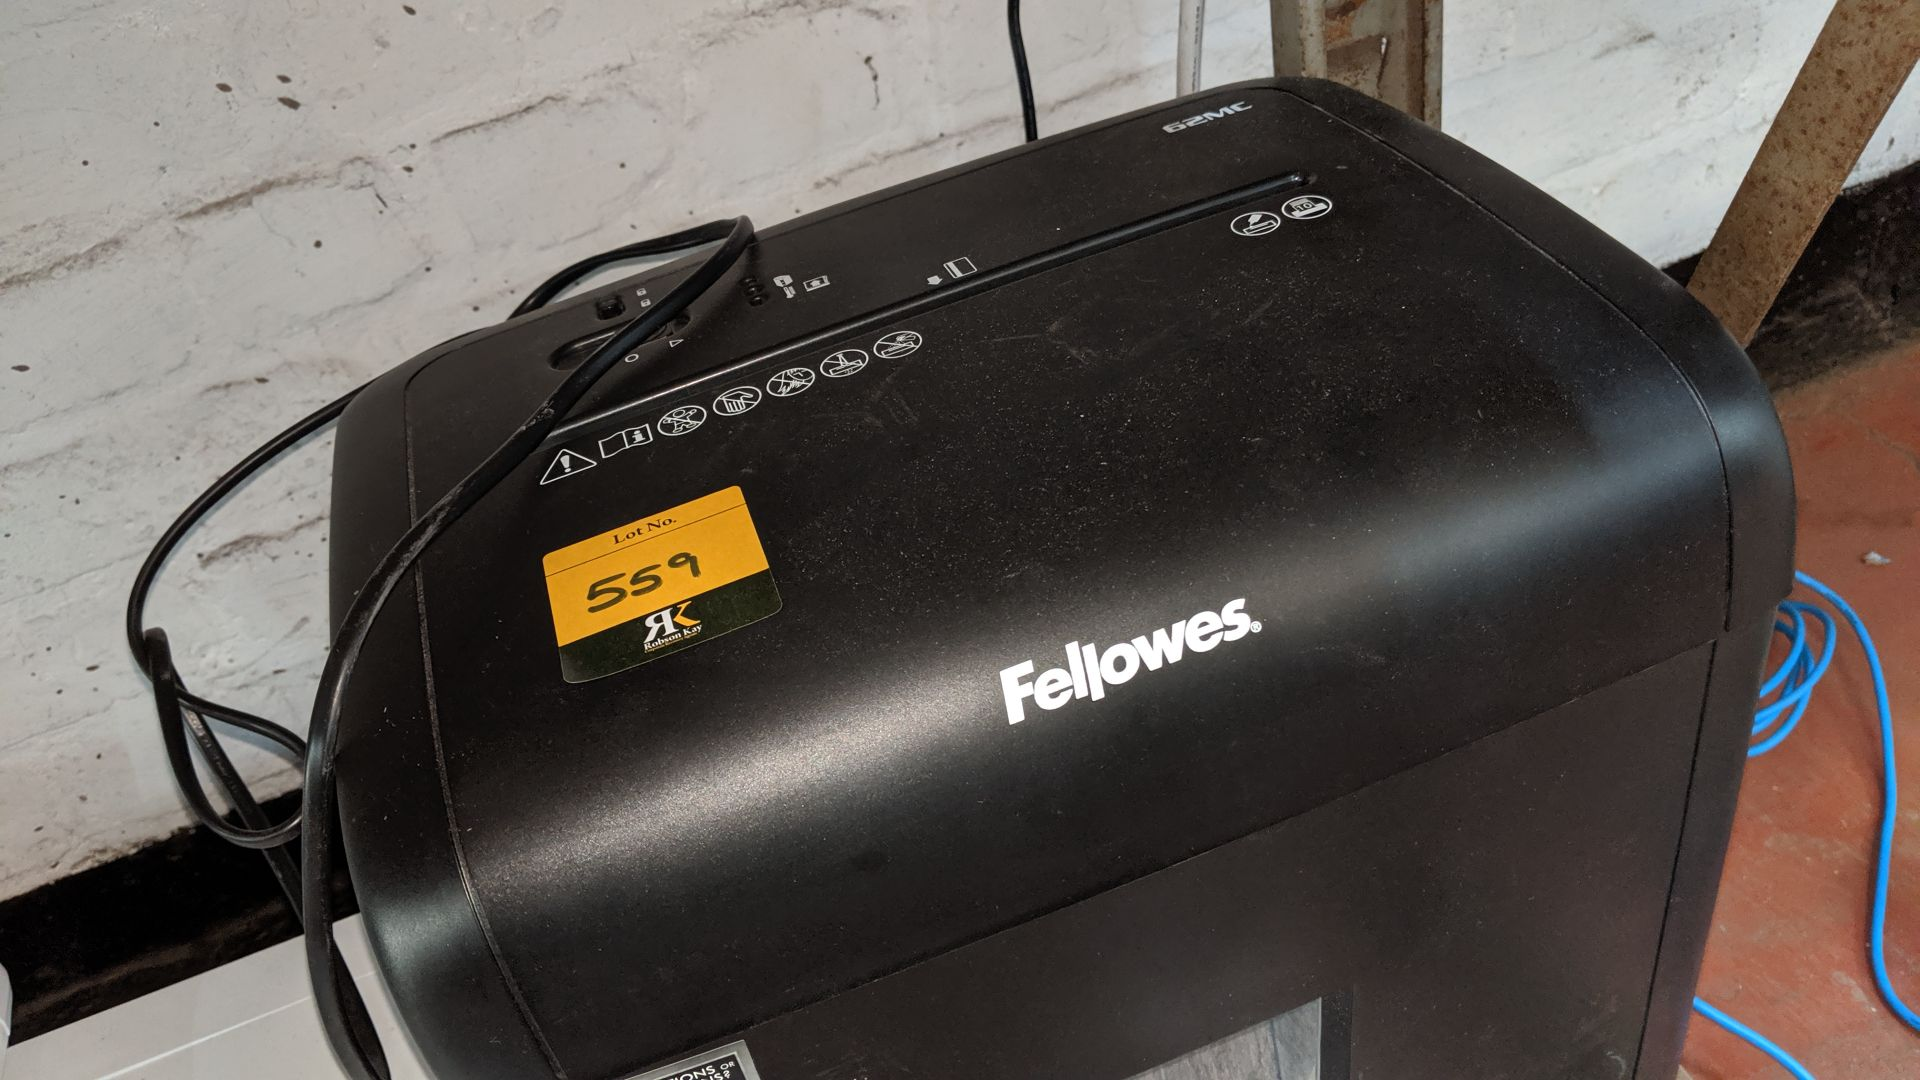 Lot 559 - Fellowes 62MC shredder. This is one of a large number of lots used/owned by One To One (North